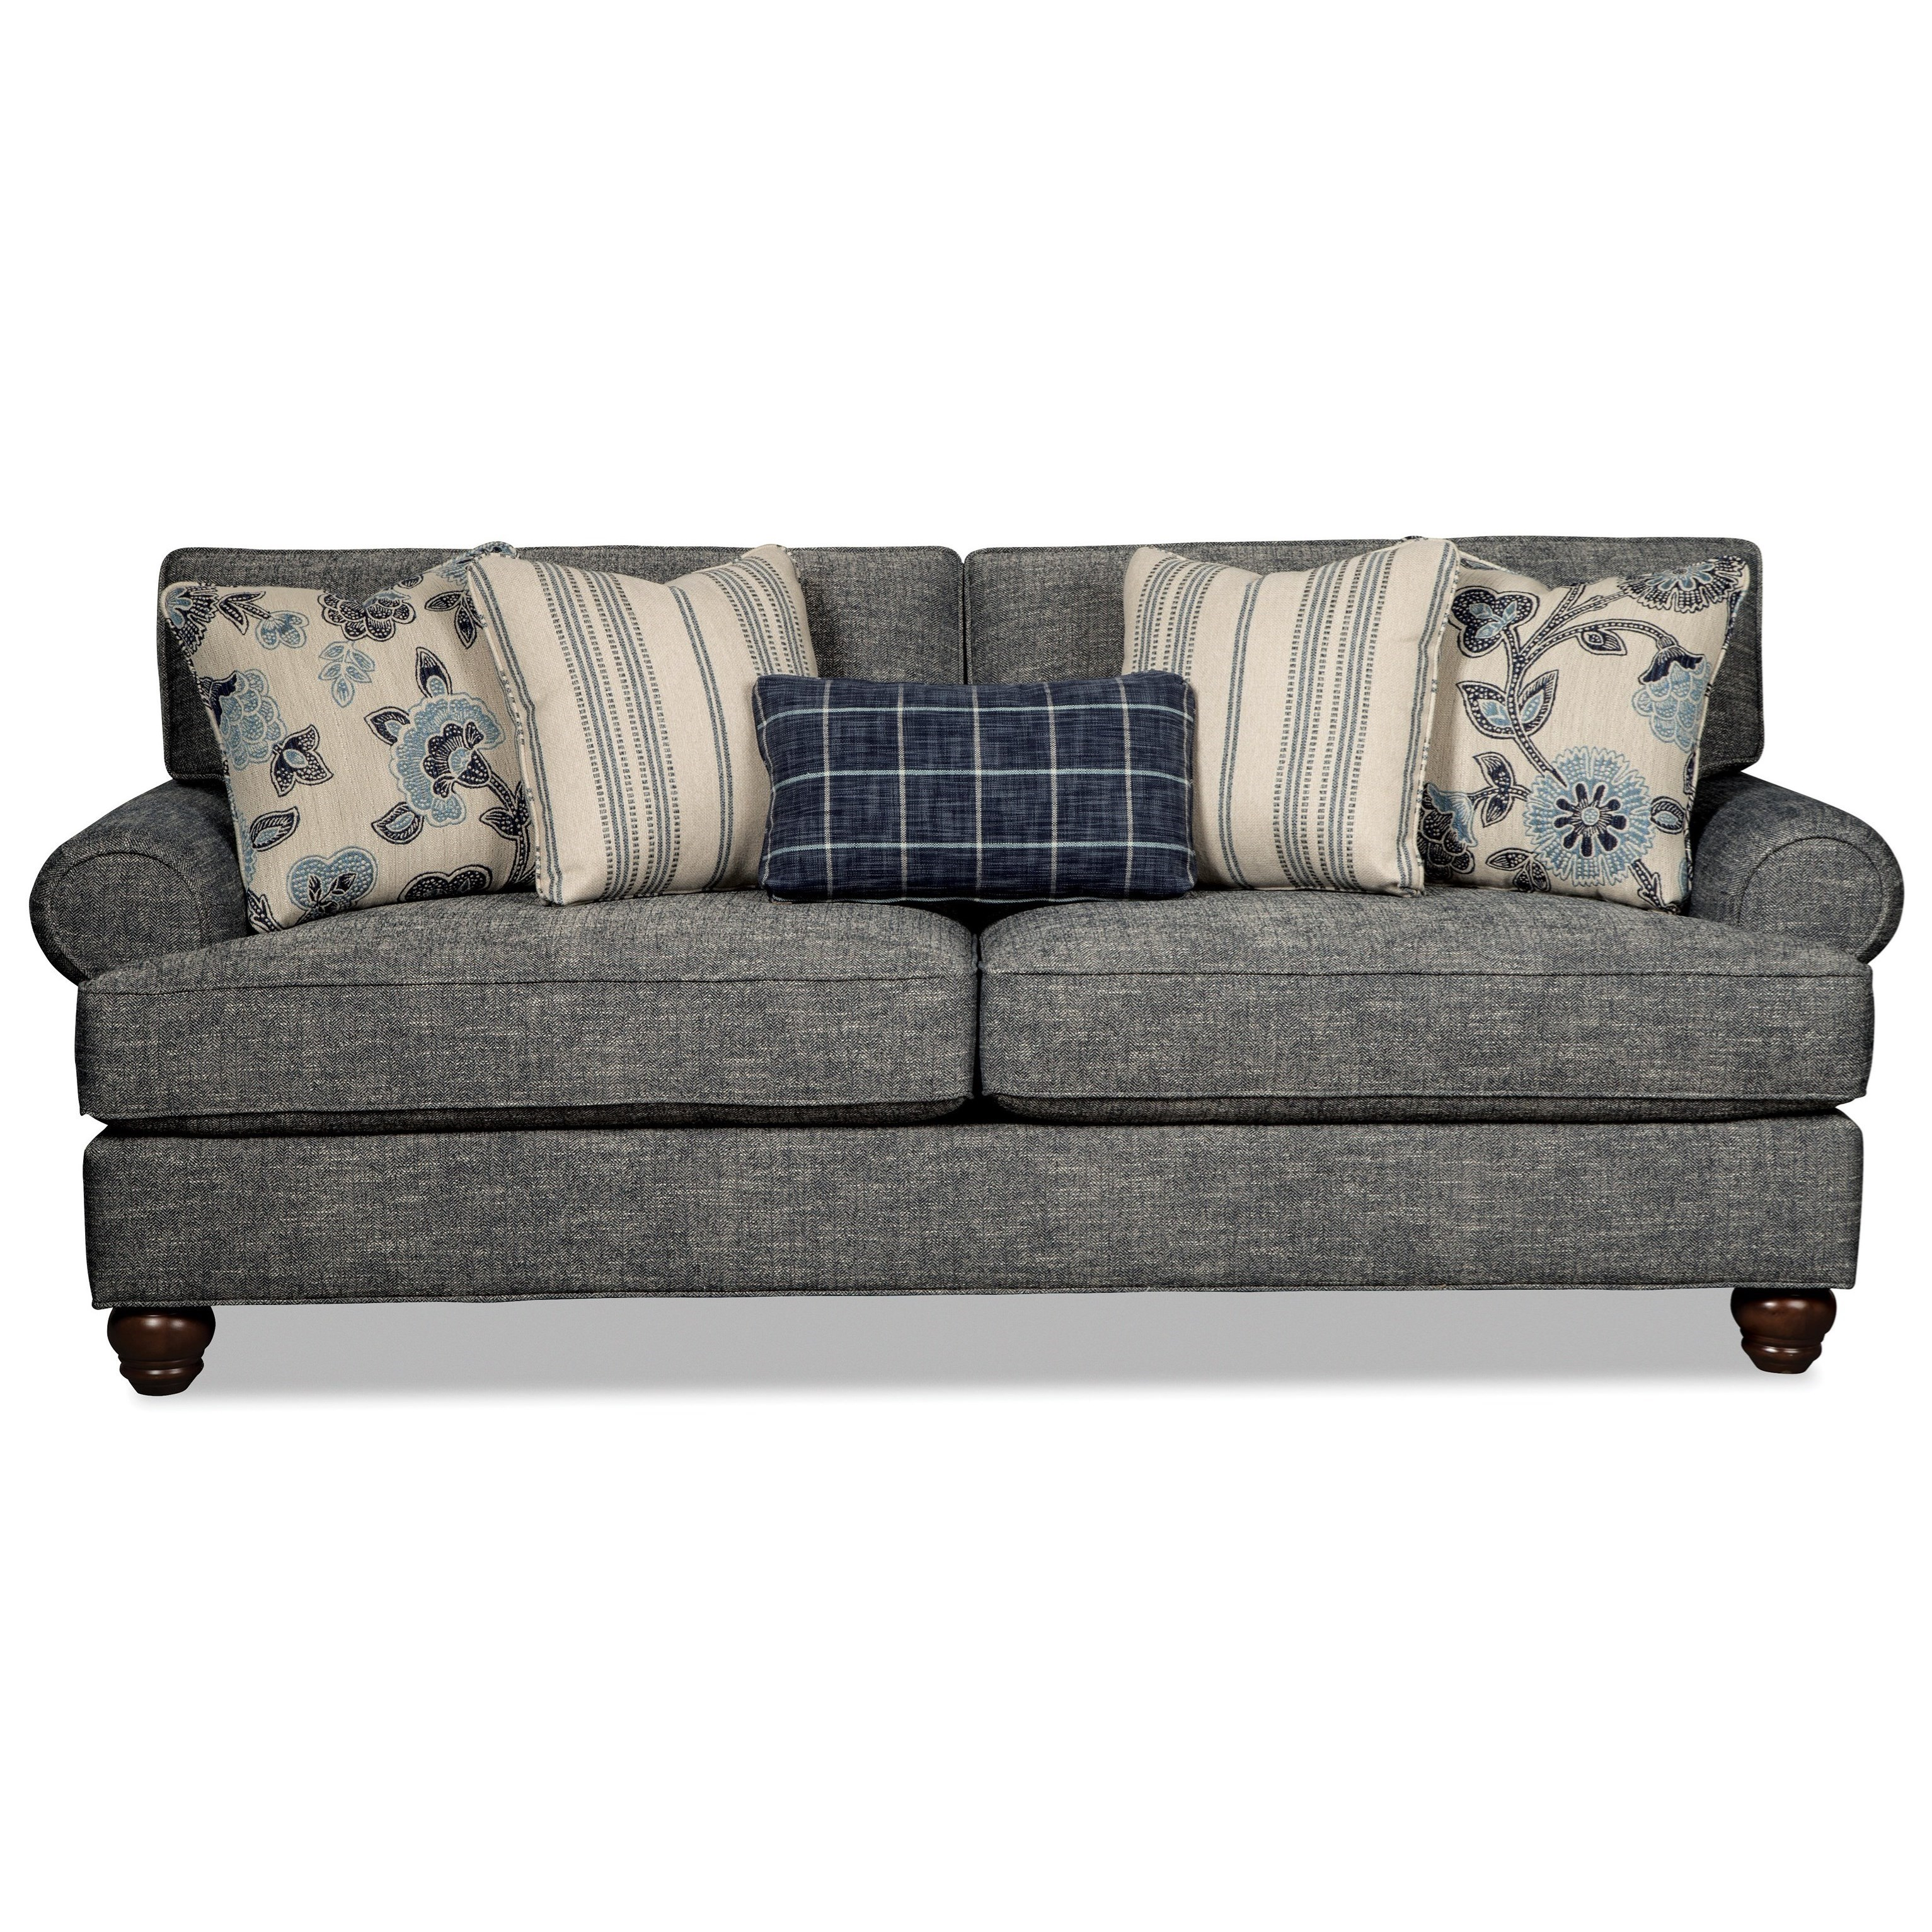 50 inch sofas blue slipcover sofa 68 leather sleeper baci living room